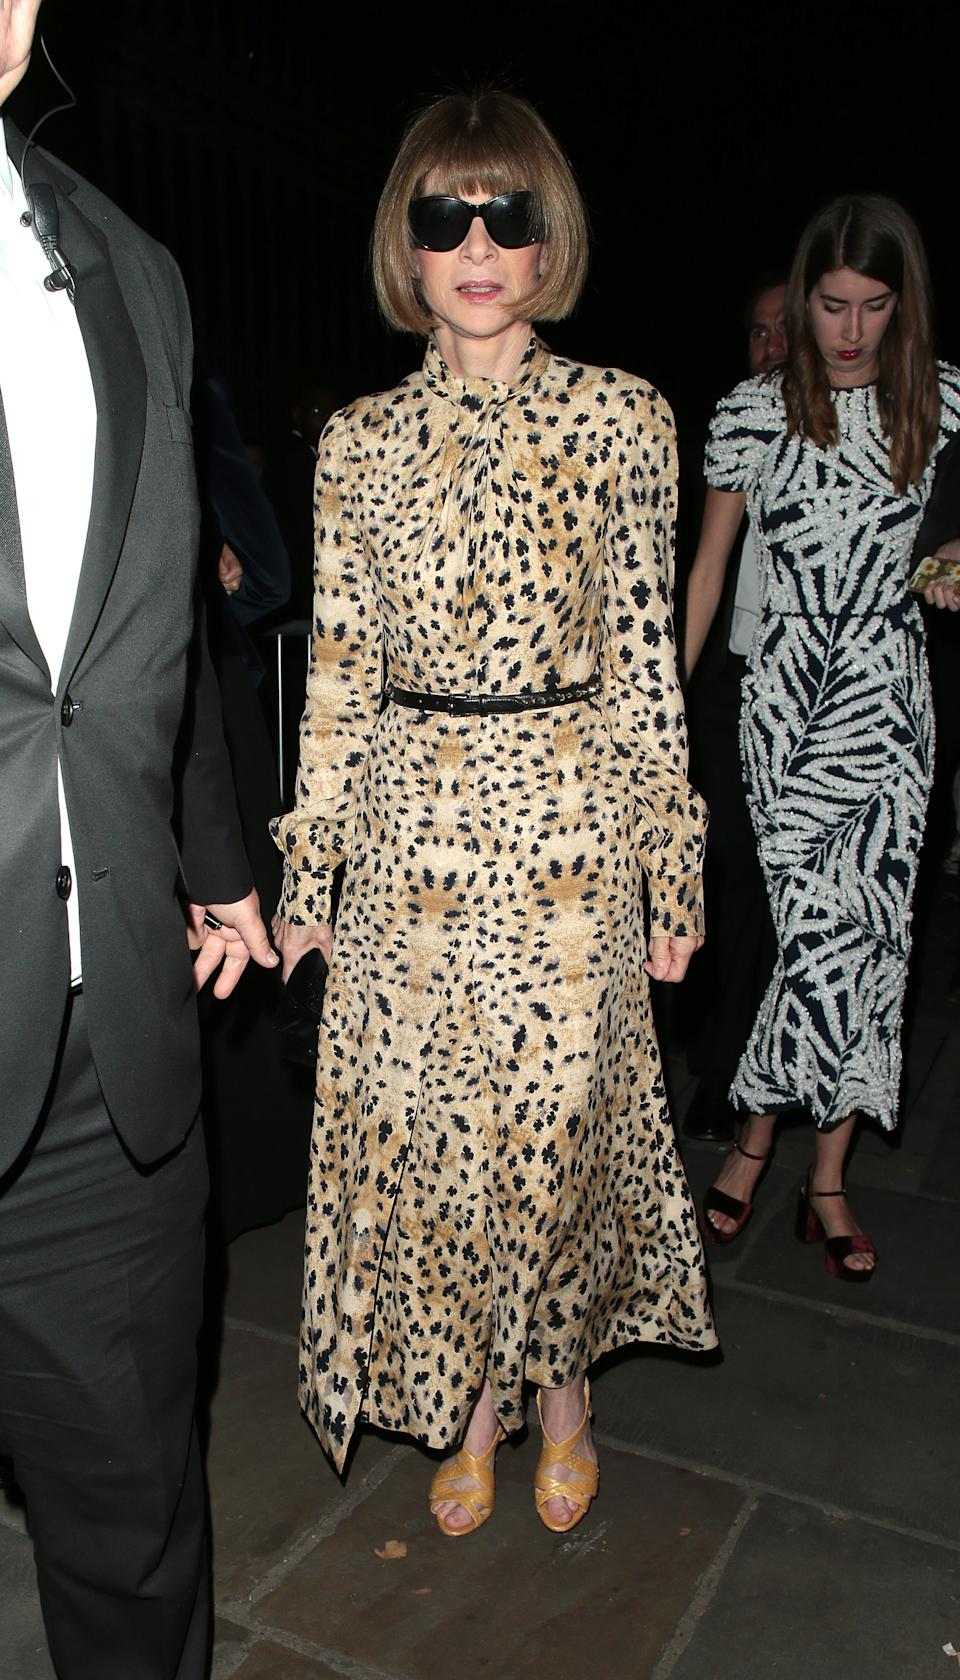 Anna Wintour attending the Fashion For Relief show during London Fashion Week [Photo: Getty Images]